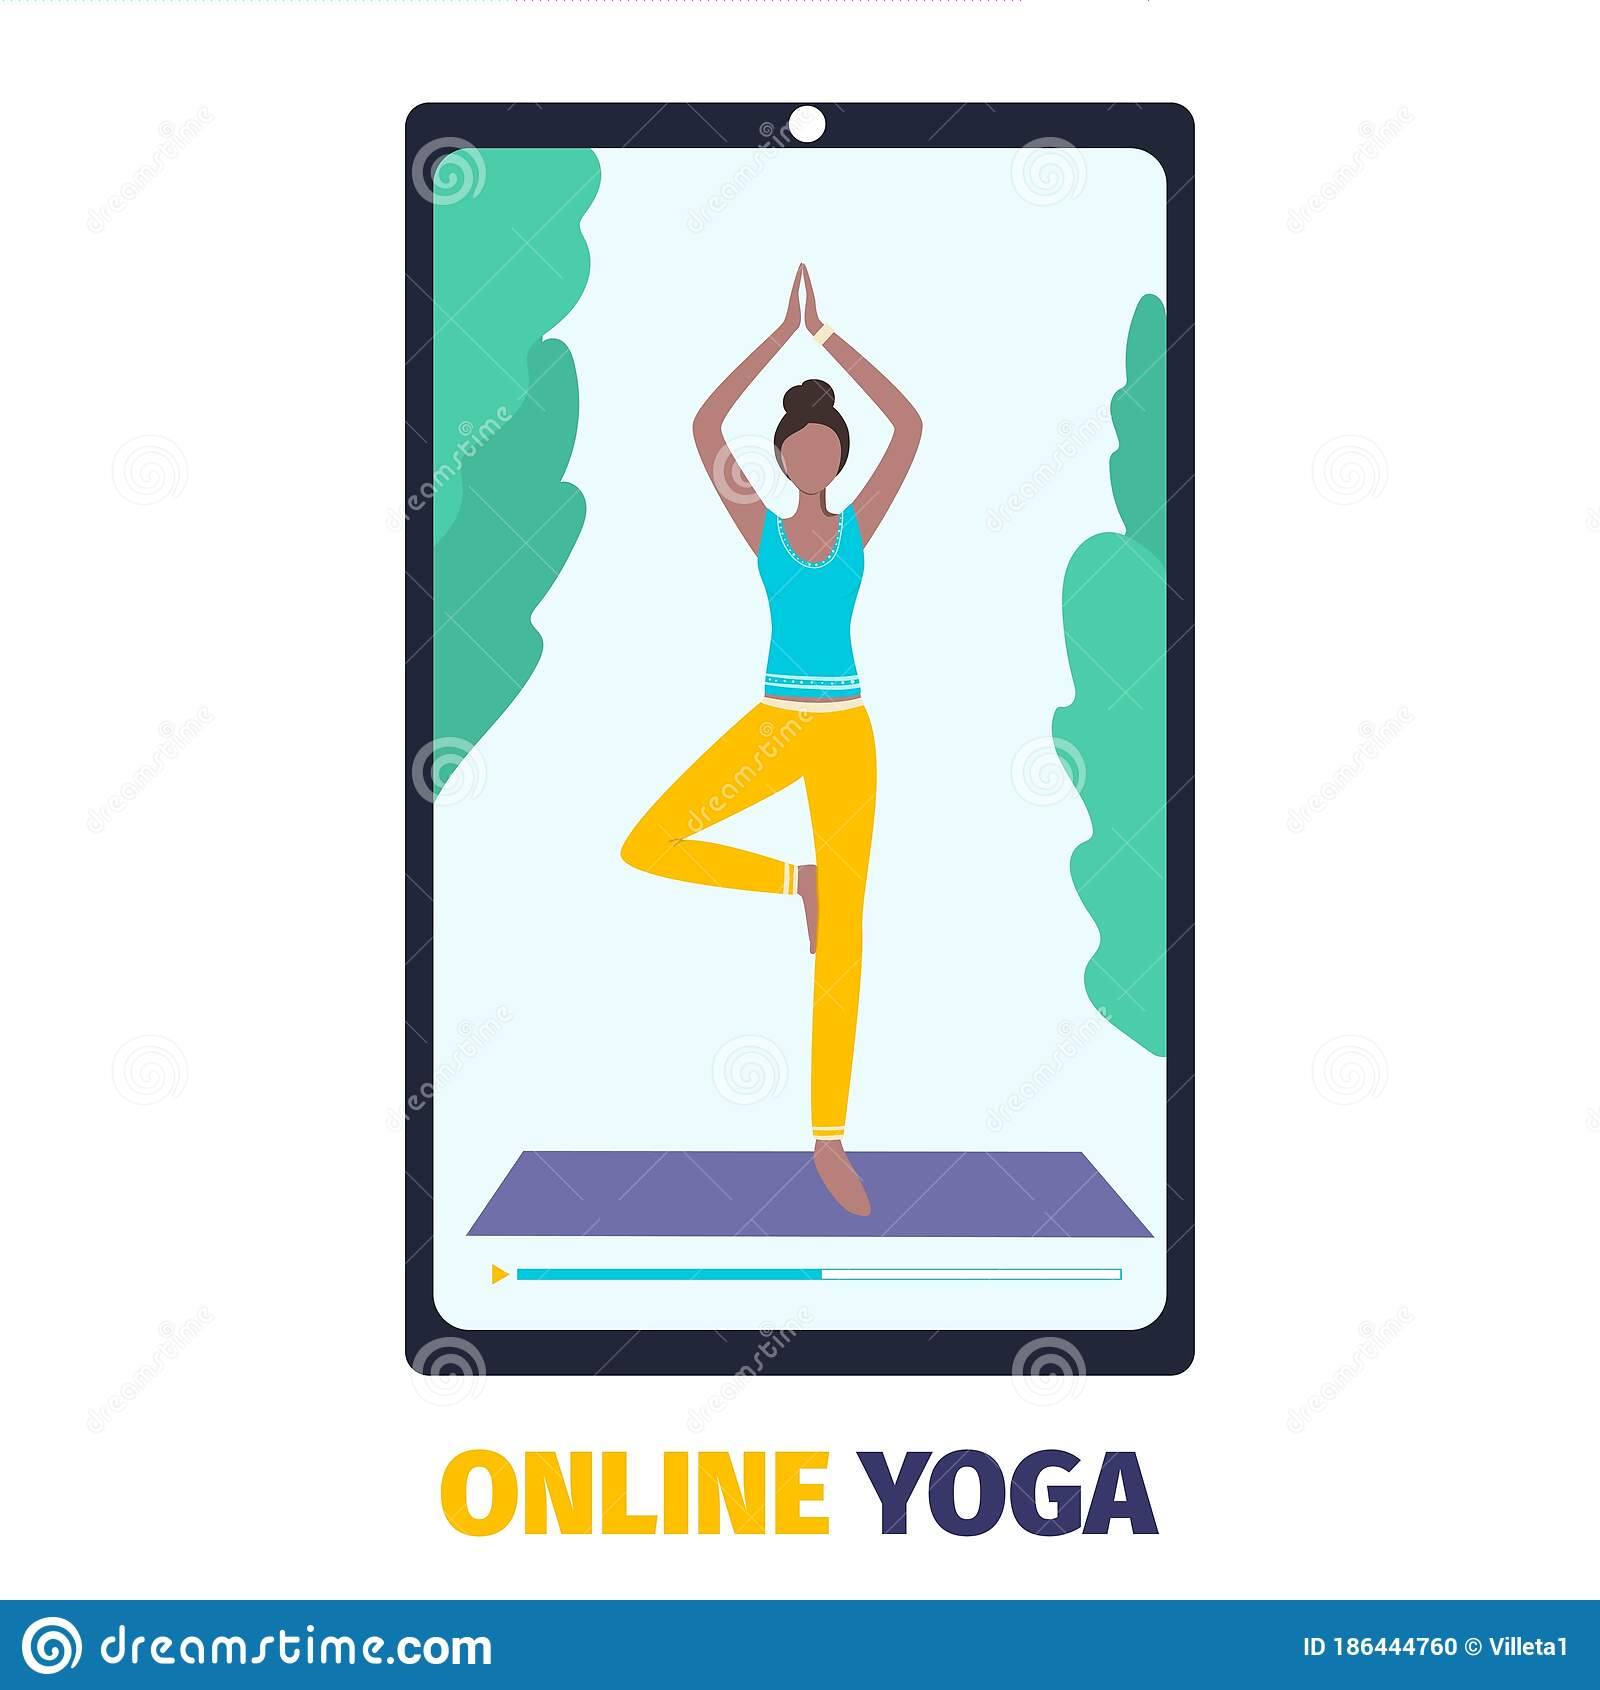 Online Yoga And Fitness App On A Smartphone Workout From Home With Mobile Device Vector Stock Vector Illustration Of Distant Health 186444760